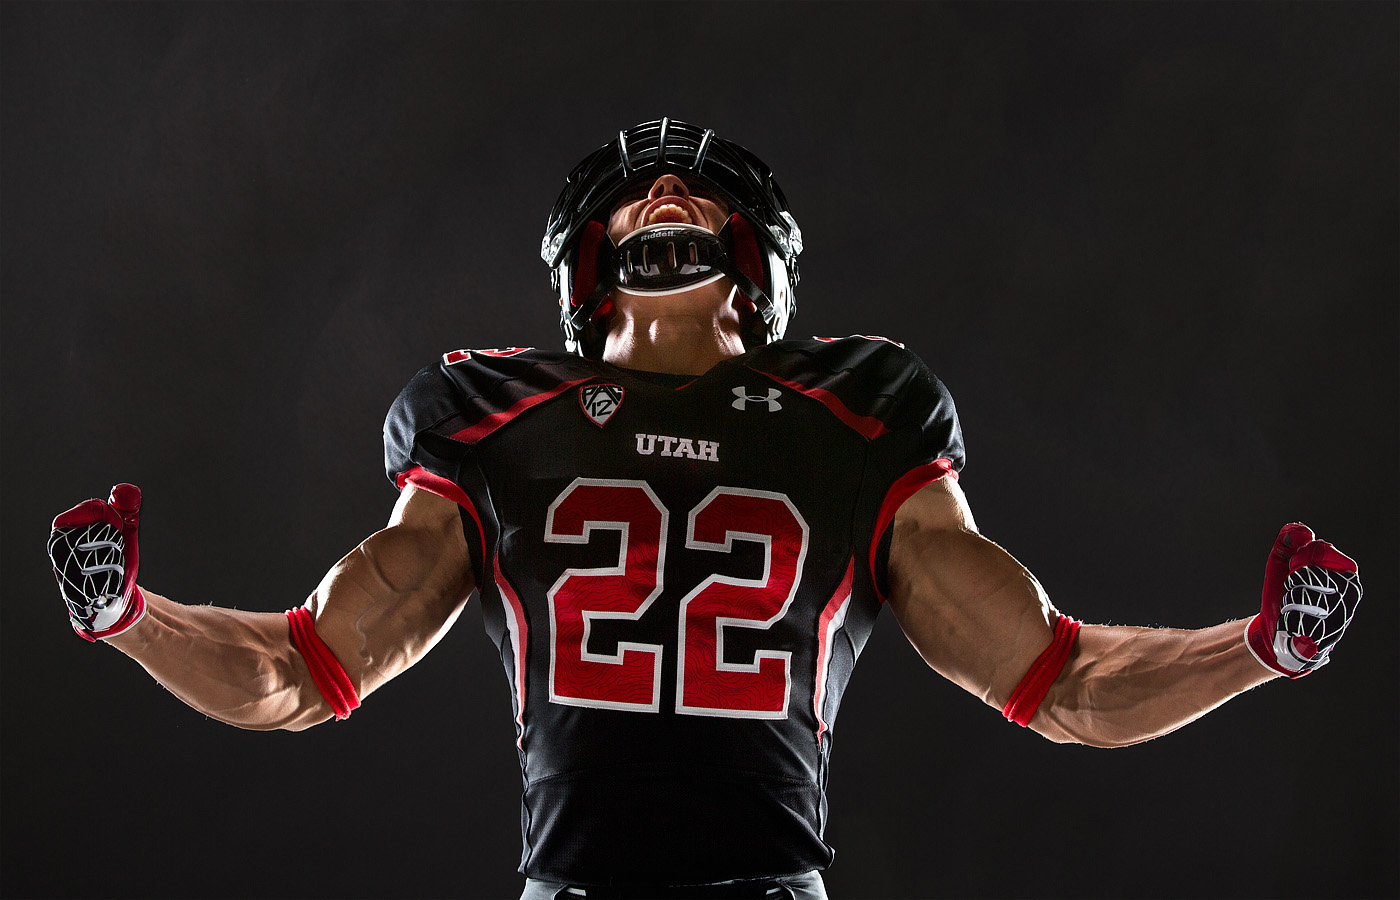 online retailer 84880 b1530 University of Utah Football | Hall of Fame Photography on ...